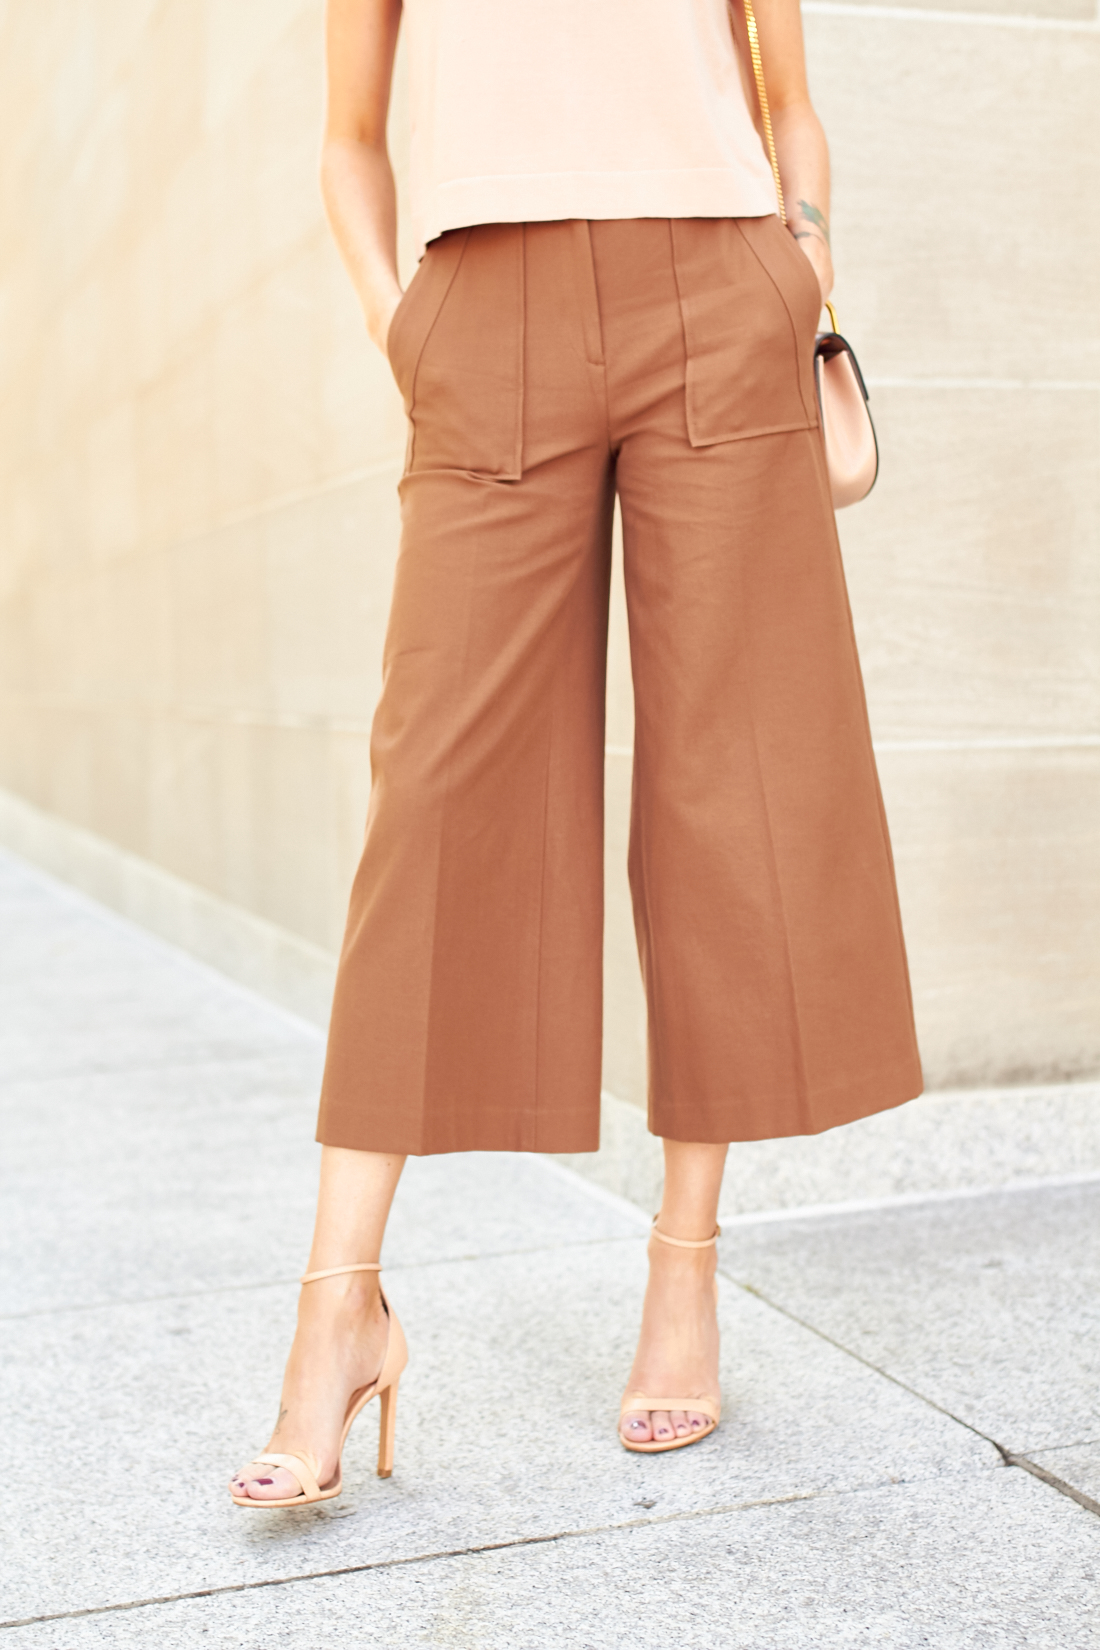 Shop wide leg pants and trousers designed for plus size women! Browse all wide leg pant styles in sizes 14 to Nobody fits your curves like Lane Bryant!